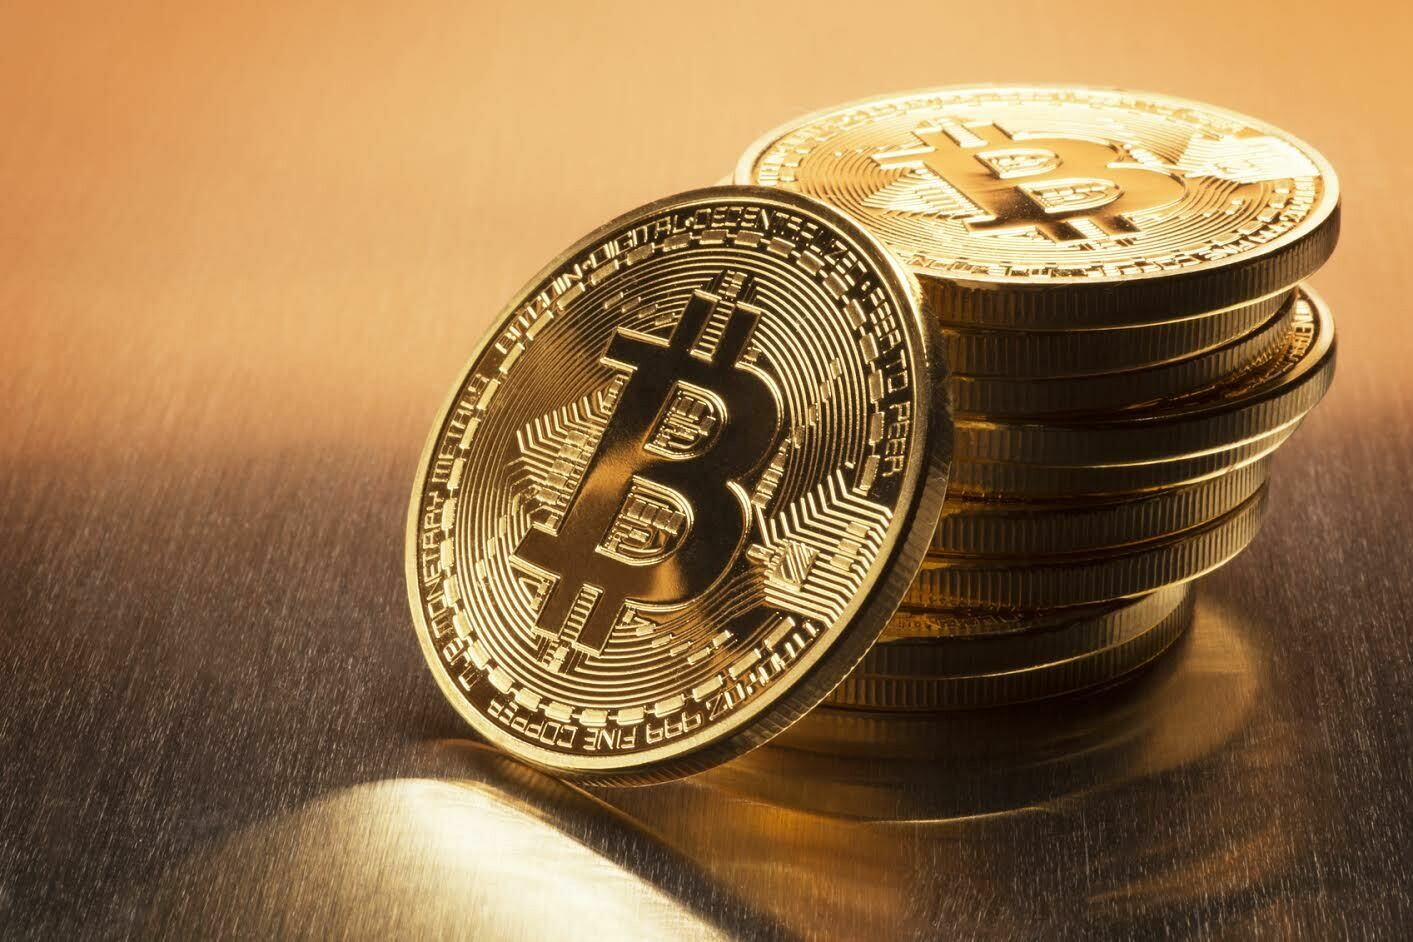 Donate Bitcoin (Click Here for Wallet Address)